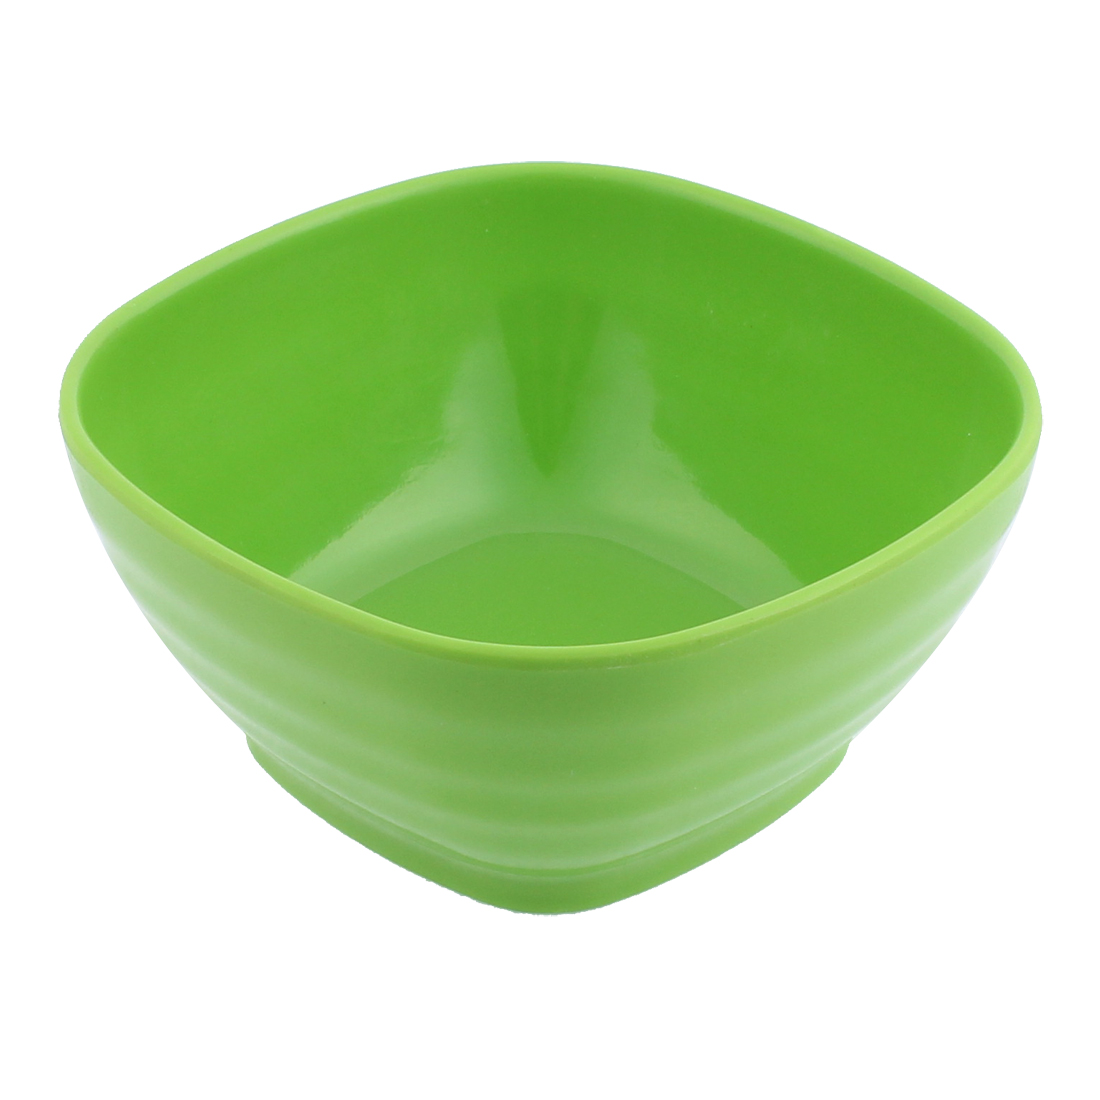 Plastic Square Shape Tableware Cereal Fruits Salad Dinner Bowl Green